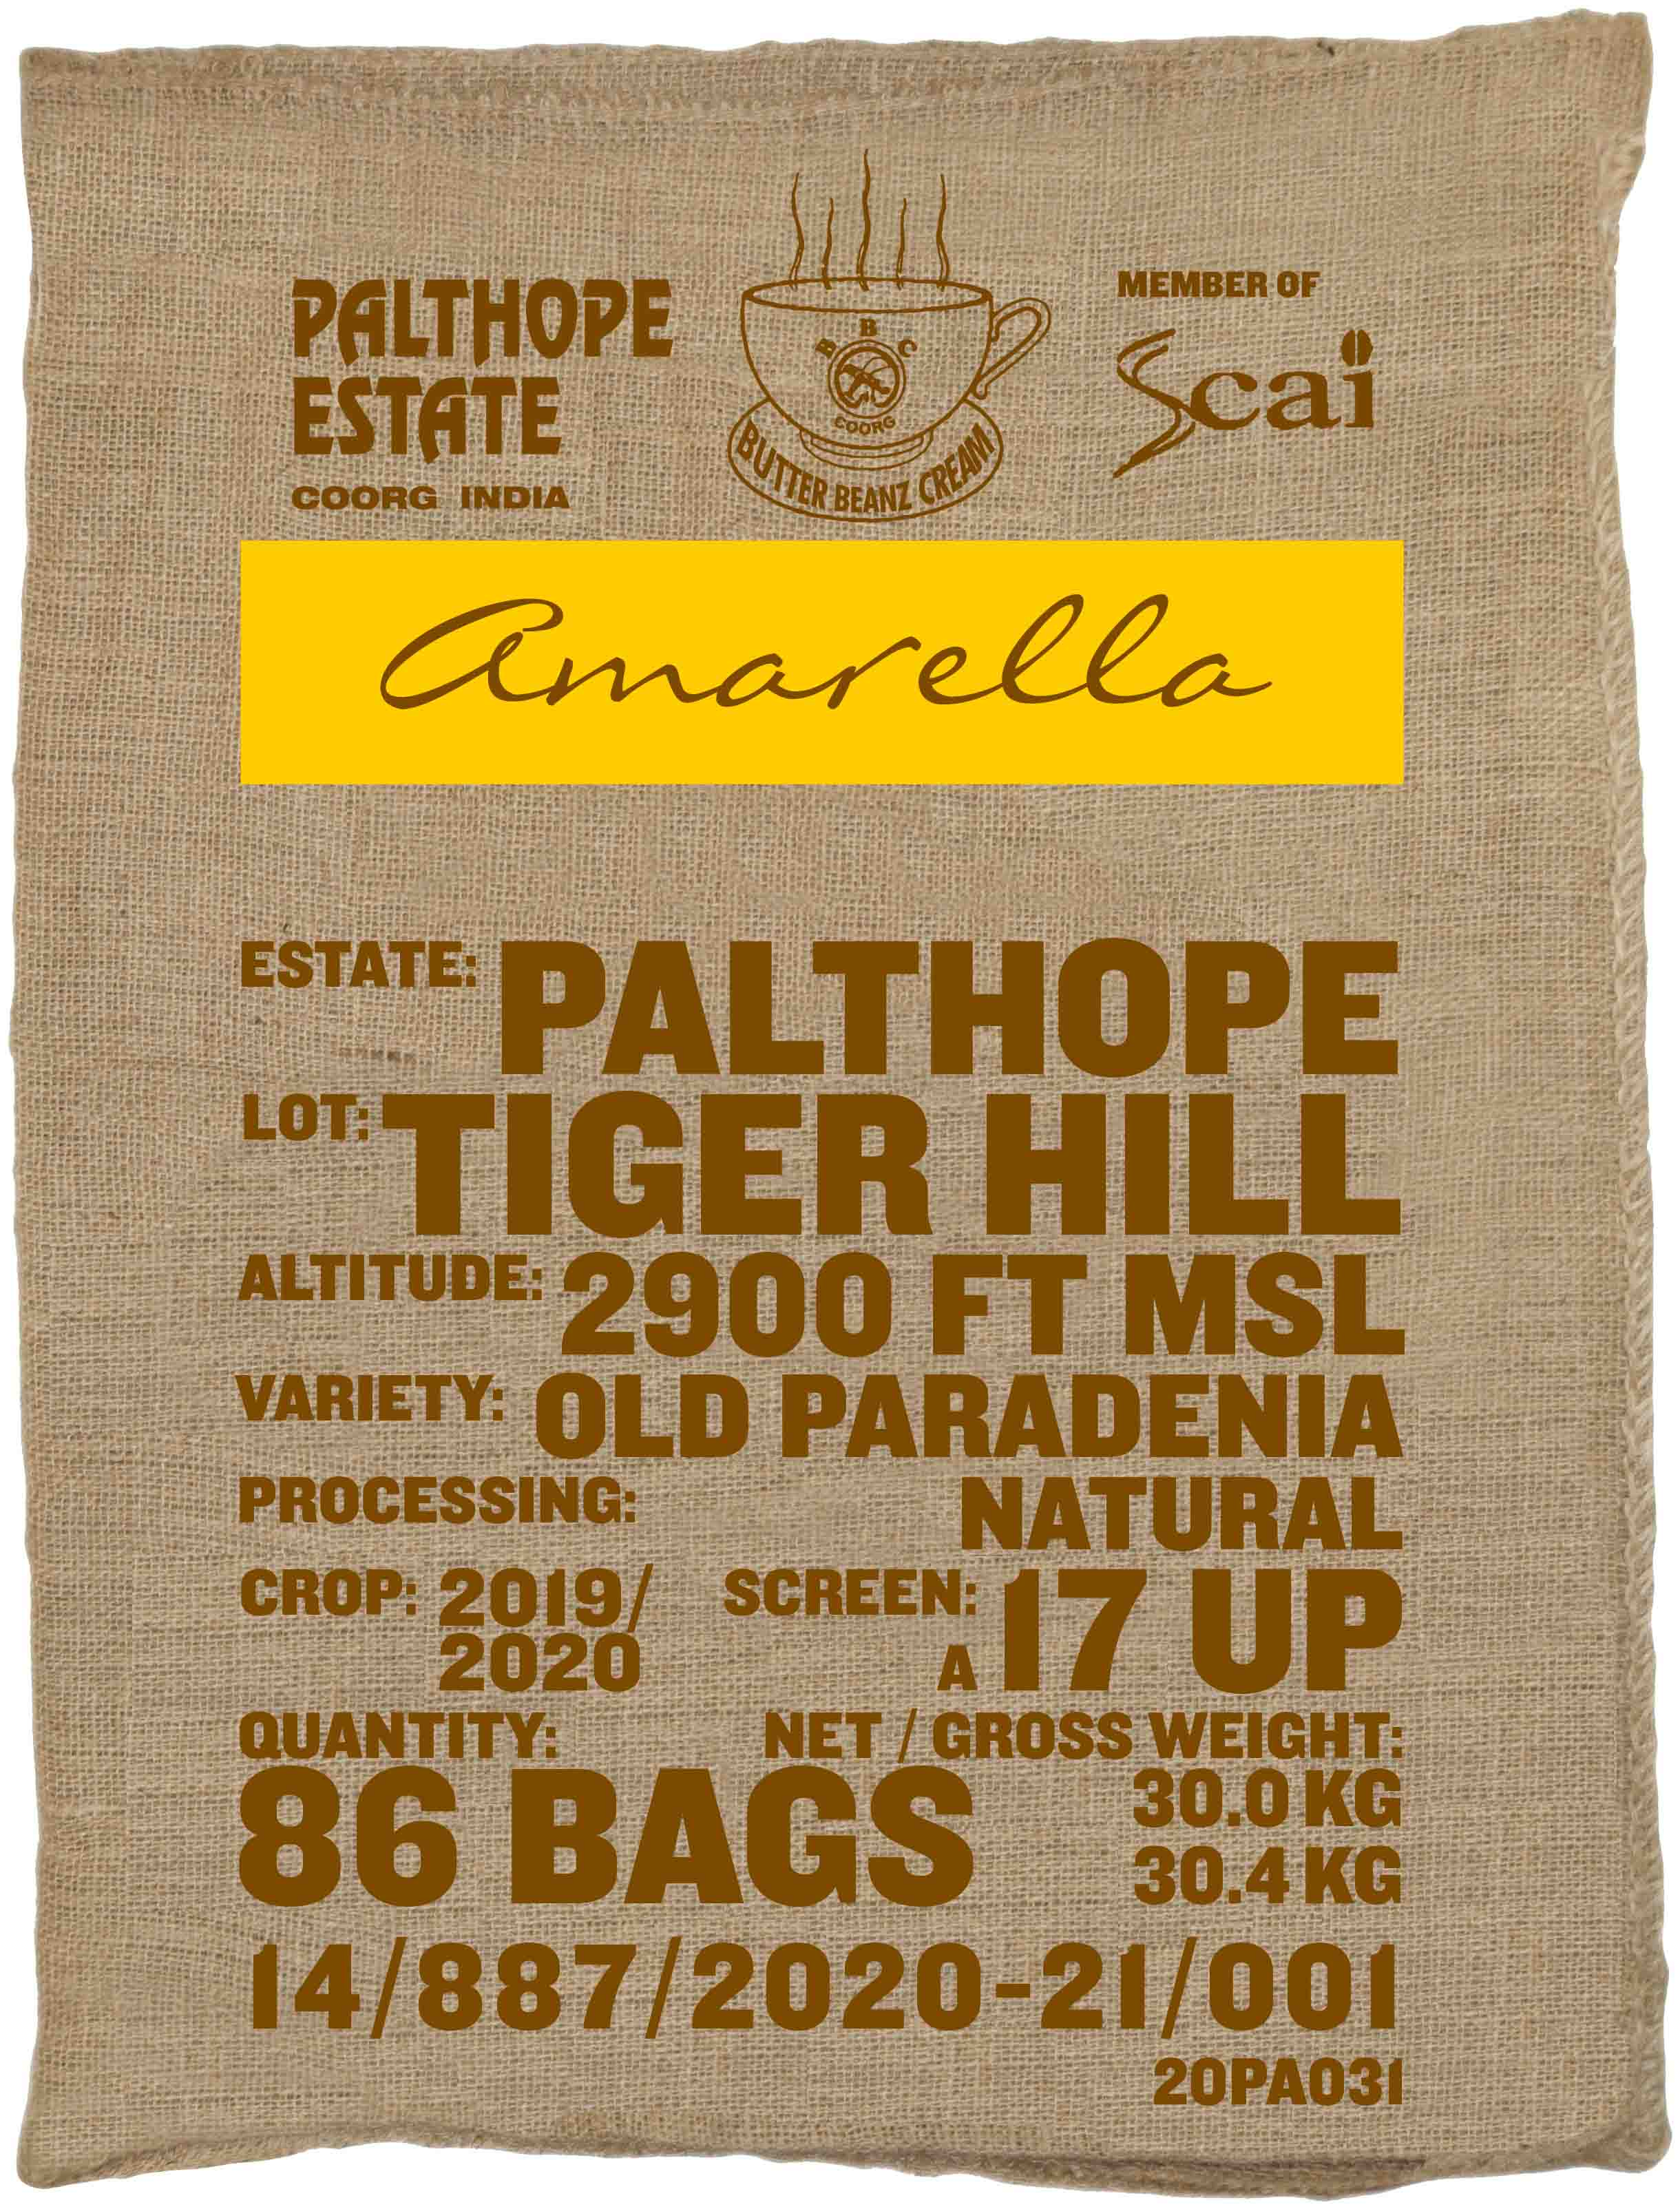 Ein Sack amarella Parzellenkaffee Varietät Old Paradenia. Palthope Estate Lot Tiger Hill.